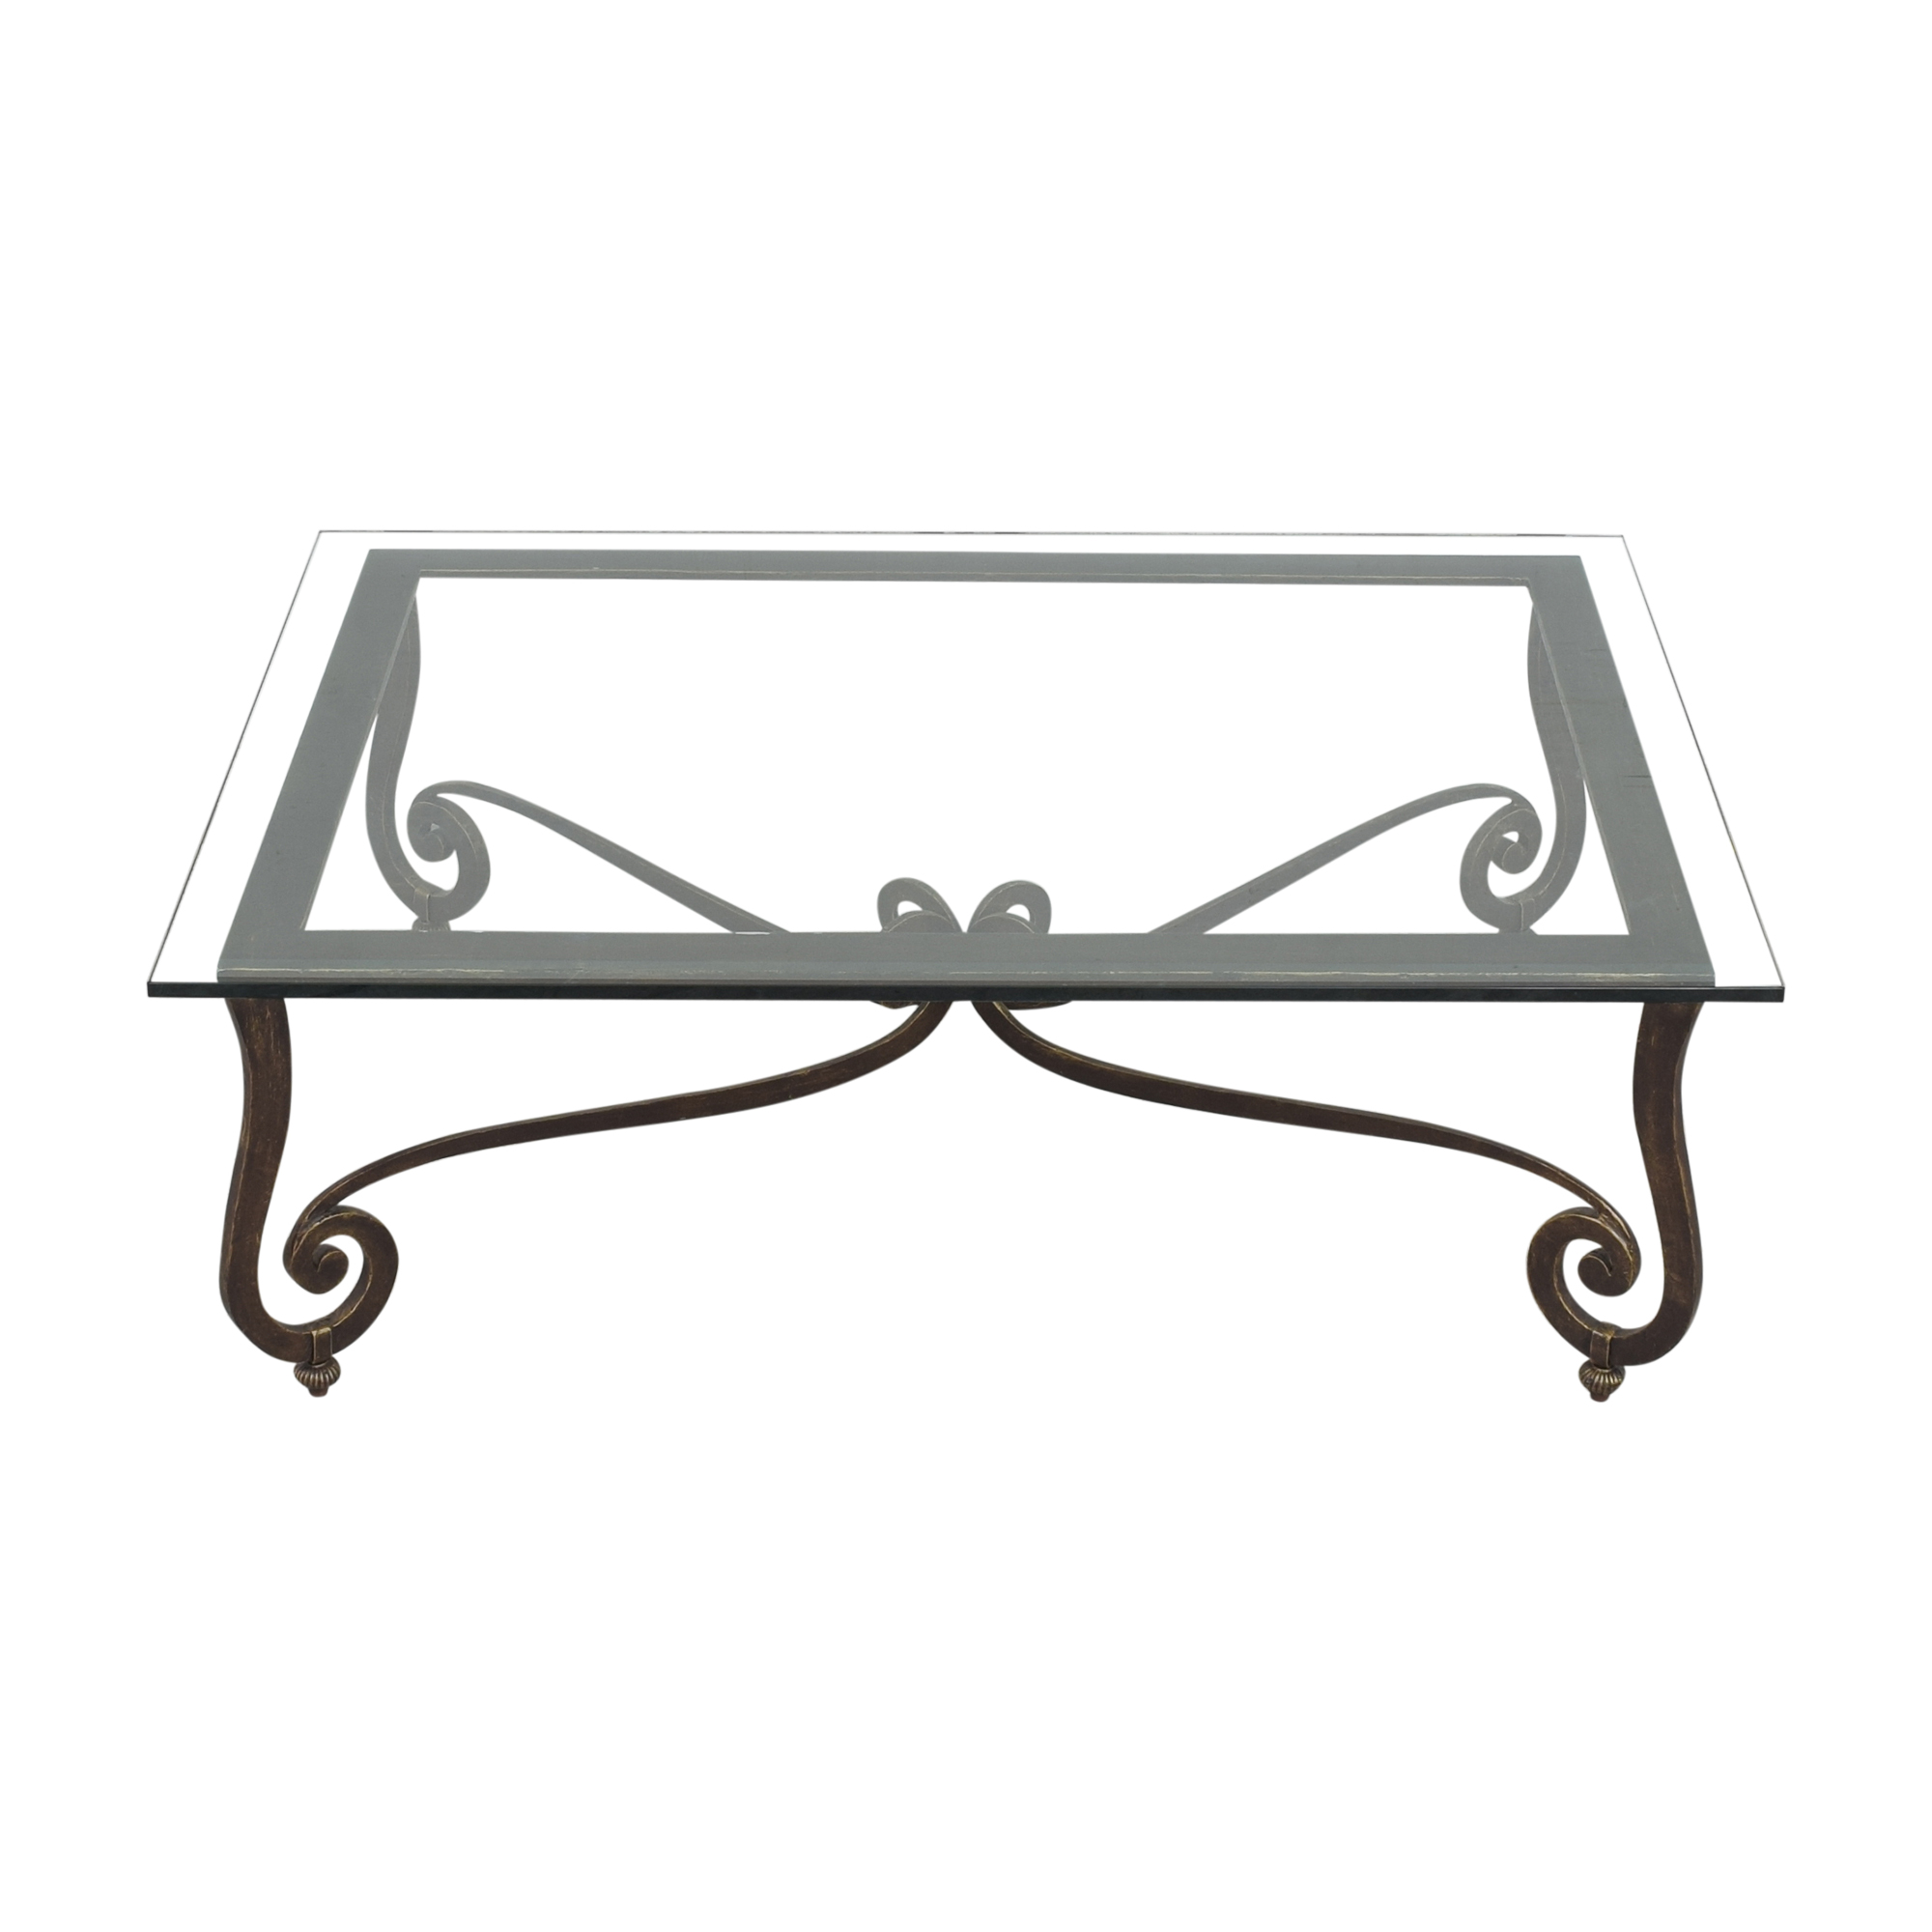 Maurice Villency Decorative Coffee Table / Coffee Tables